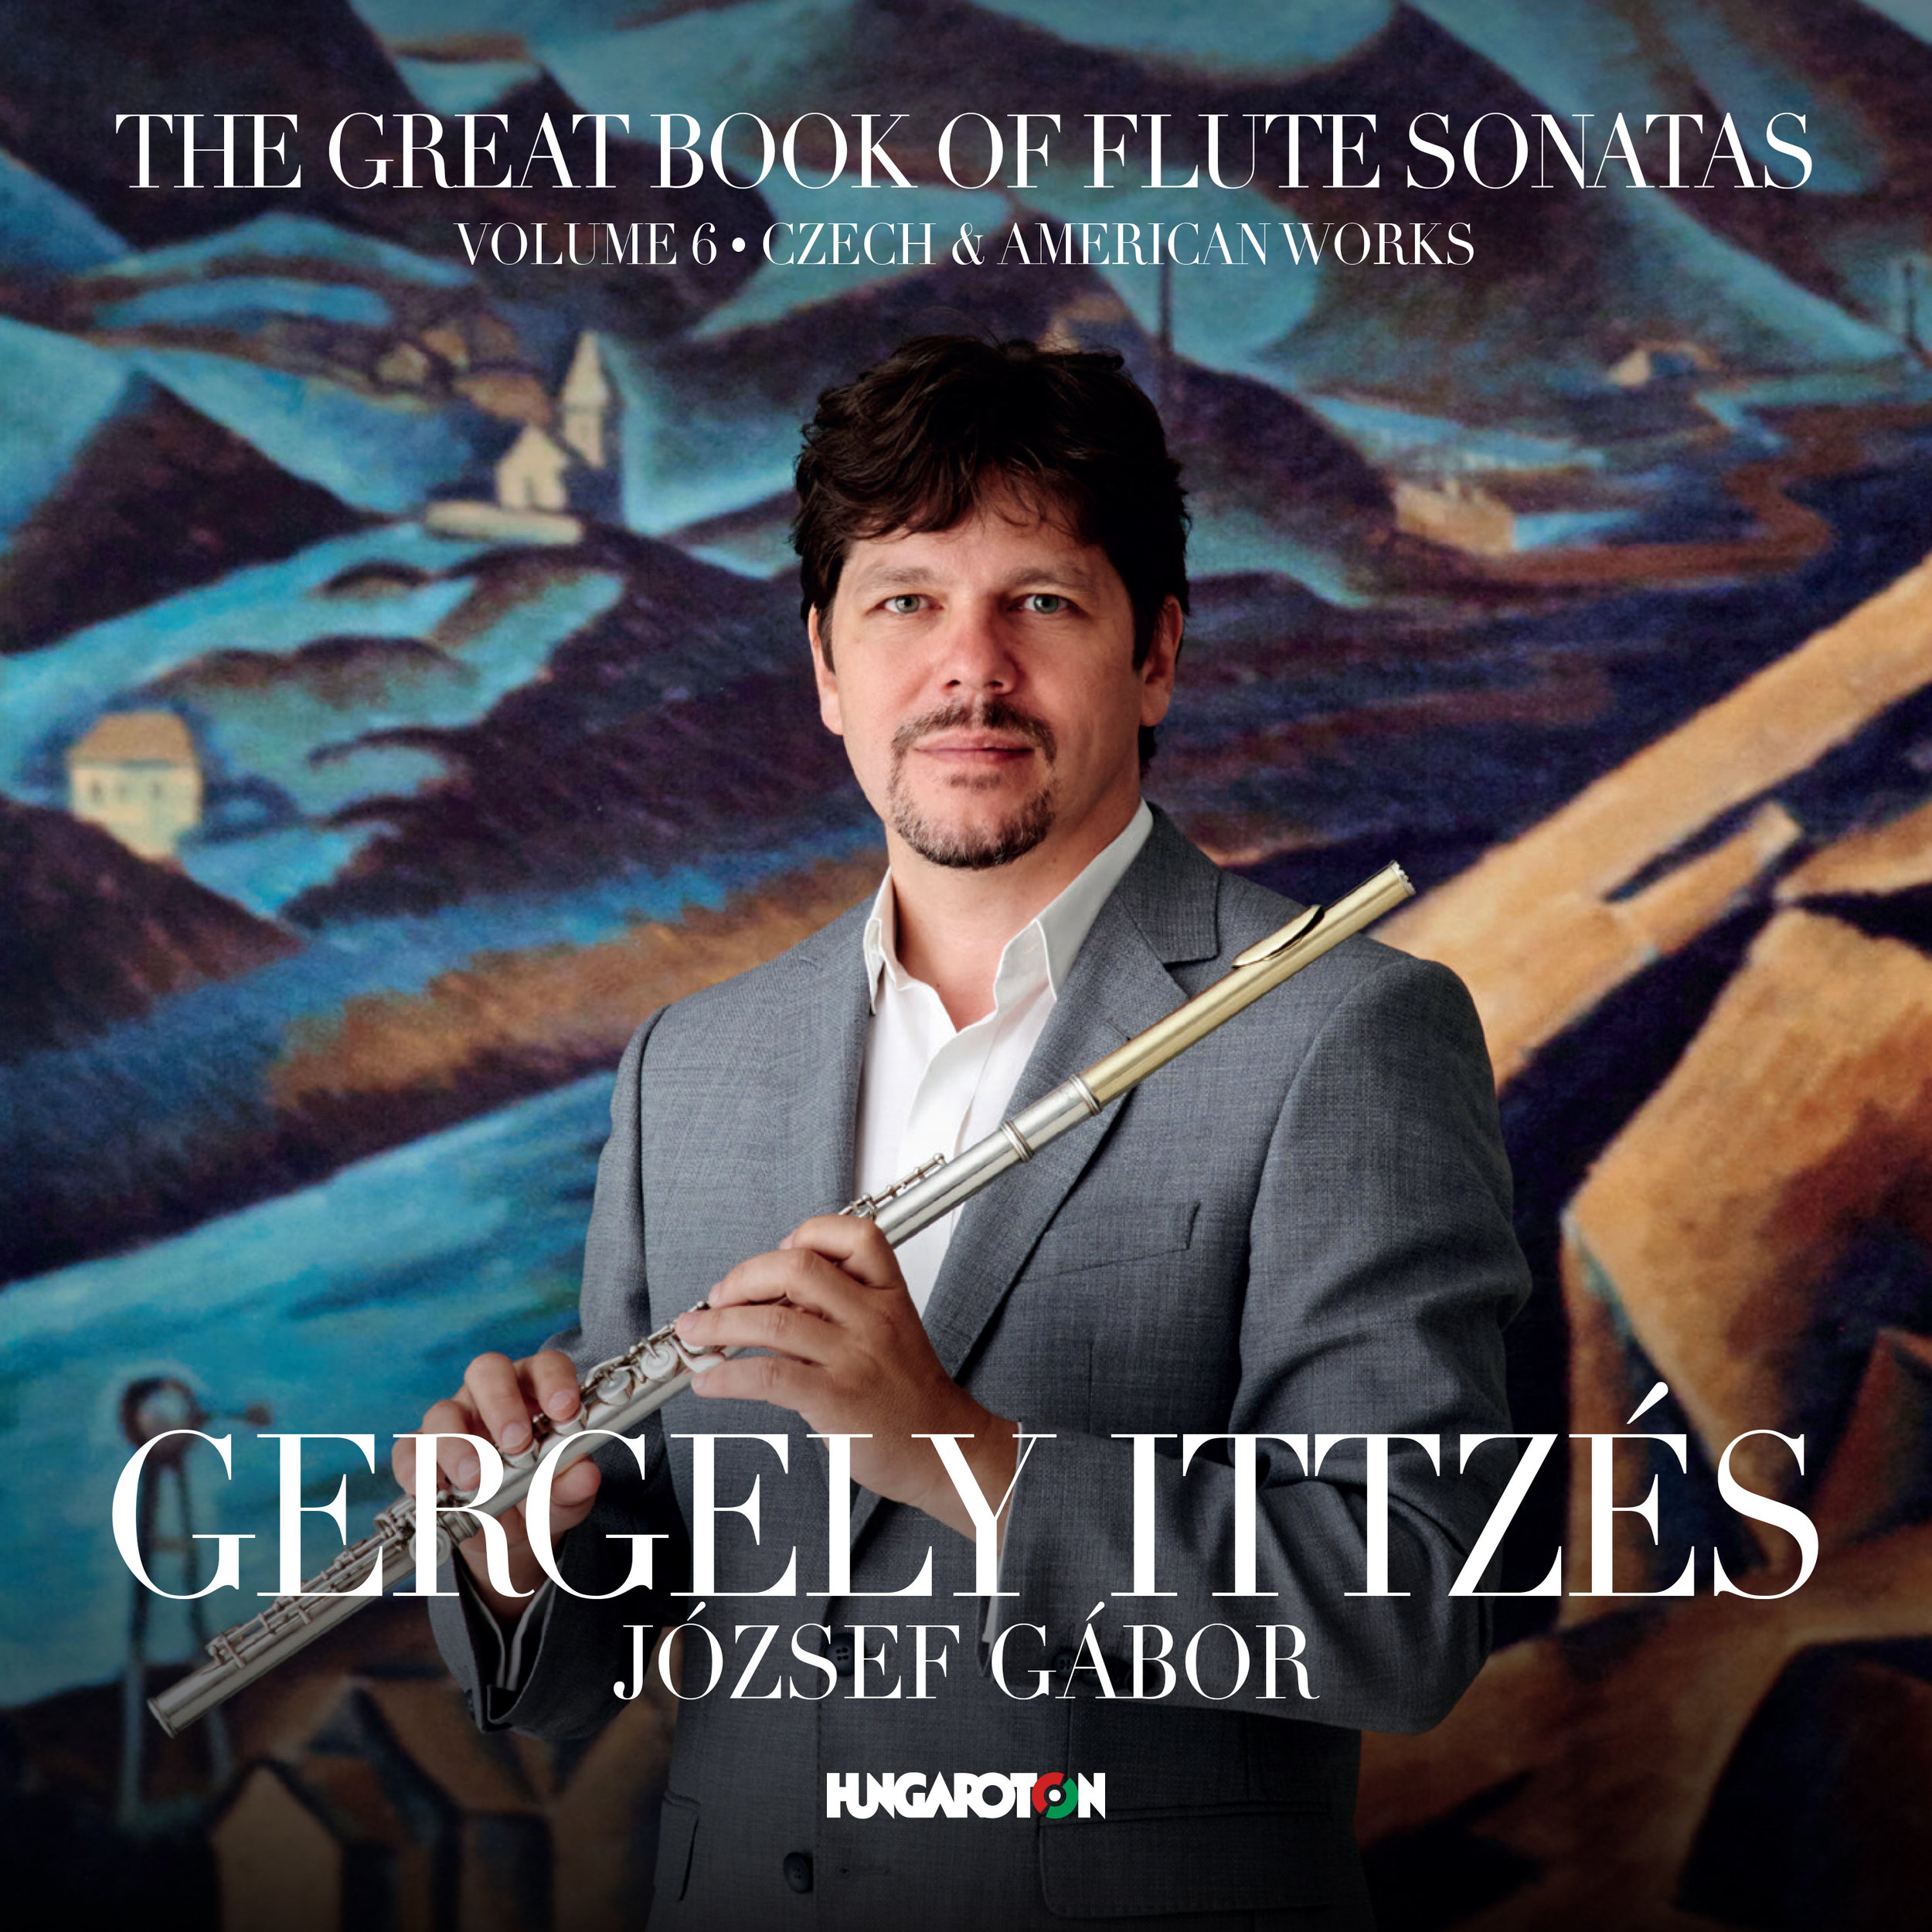 """Hungaroton's Seven-CD Album is in the Top Three! - Hungaroton's seven-CD album """"The Great Book of Flute Sonatas"""" has made it to the top three nominations at the International Classical Music Awards (ICMA) 2019, said the Head of the Jury, Mr. Remy Franck, on the 10th December in a statement. The CD collection, arching over three centuries of flute music and featuring Gergely Ittzés on the flute boasts several raving reviews. The winners will be announced on 19th January 2019. The Award Ceremony and Gala concert will take place in May 2019 at the KKL in Lucerne, Switzerland."""